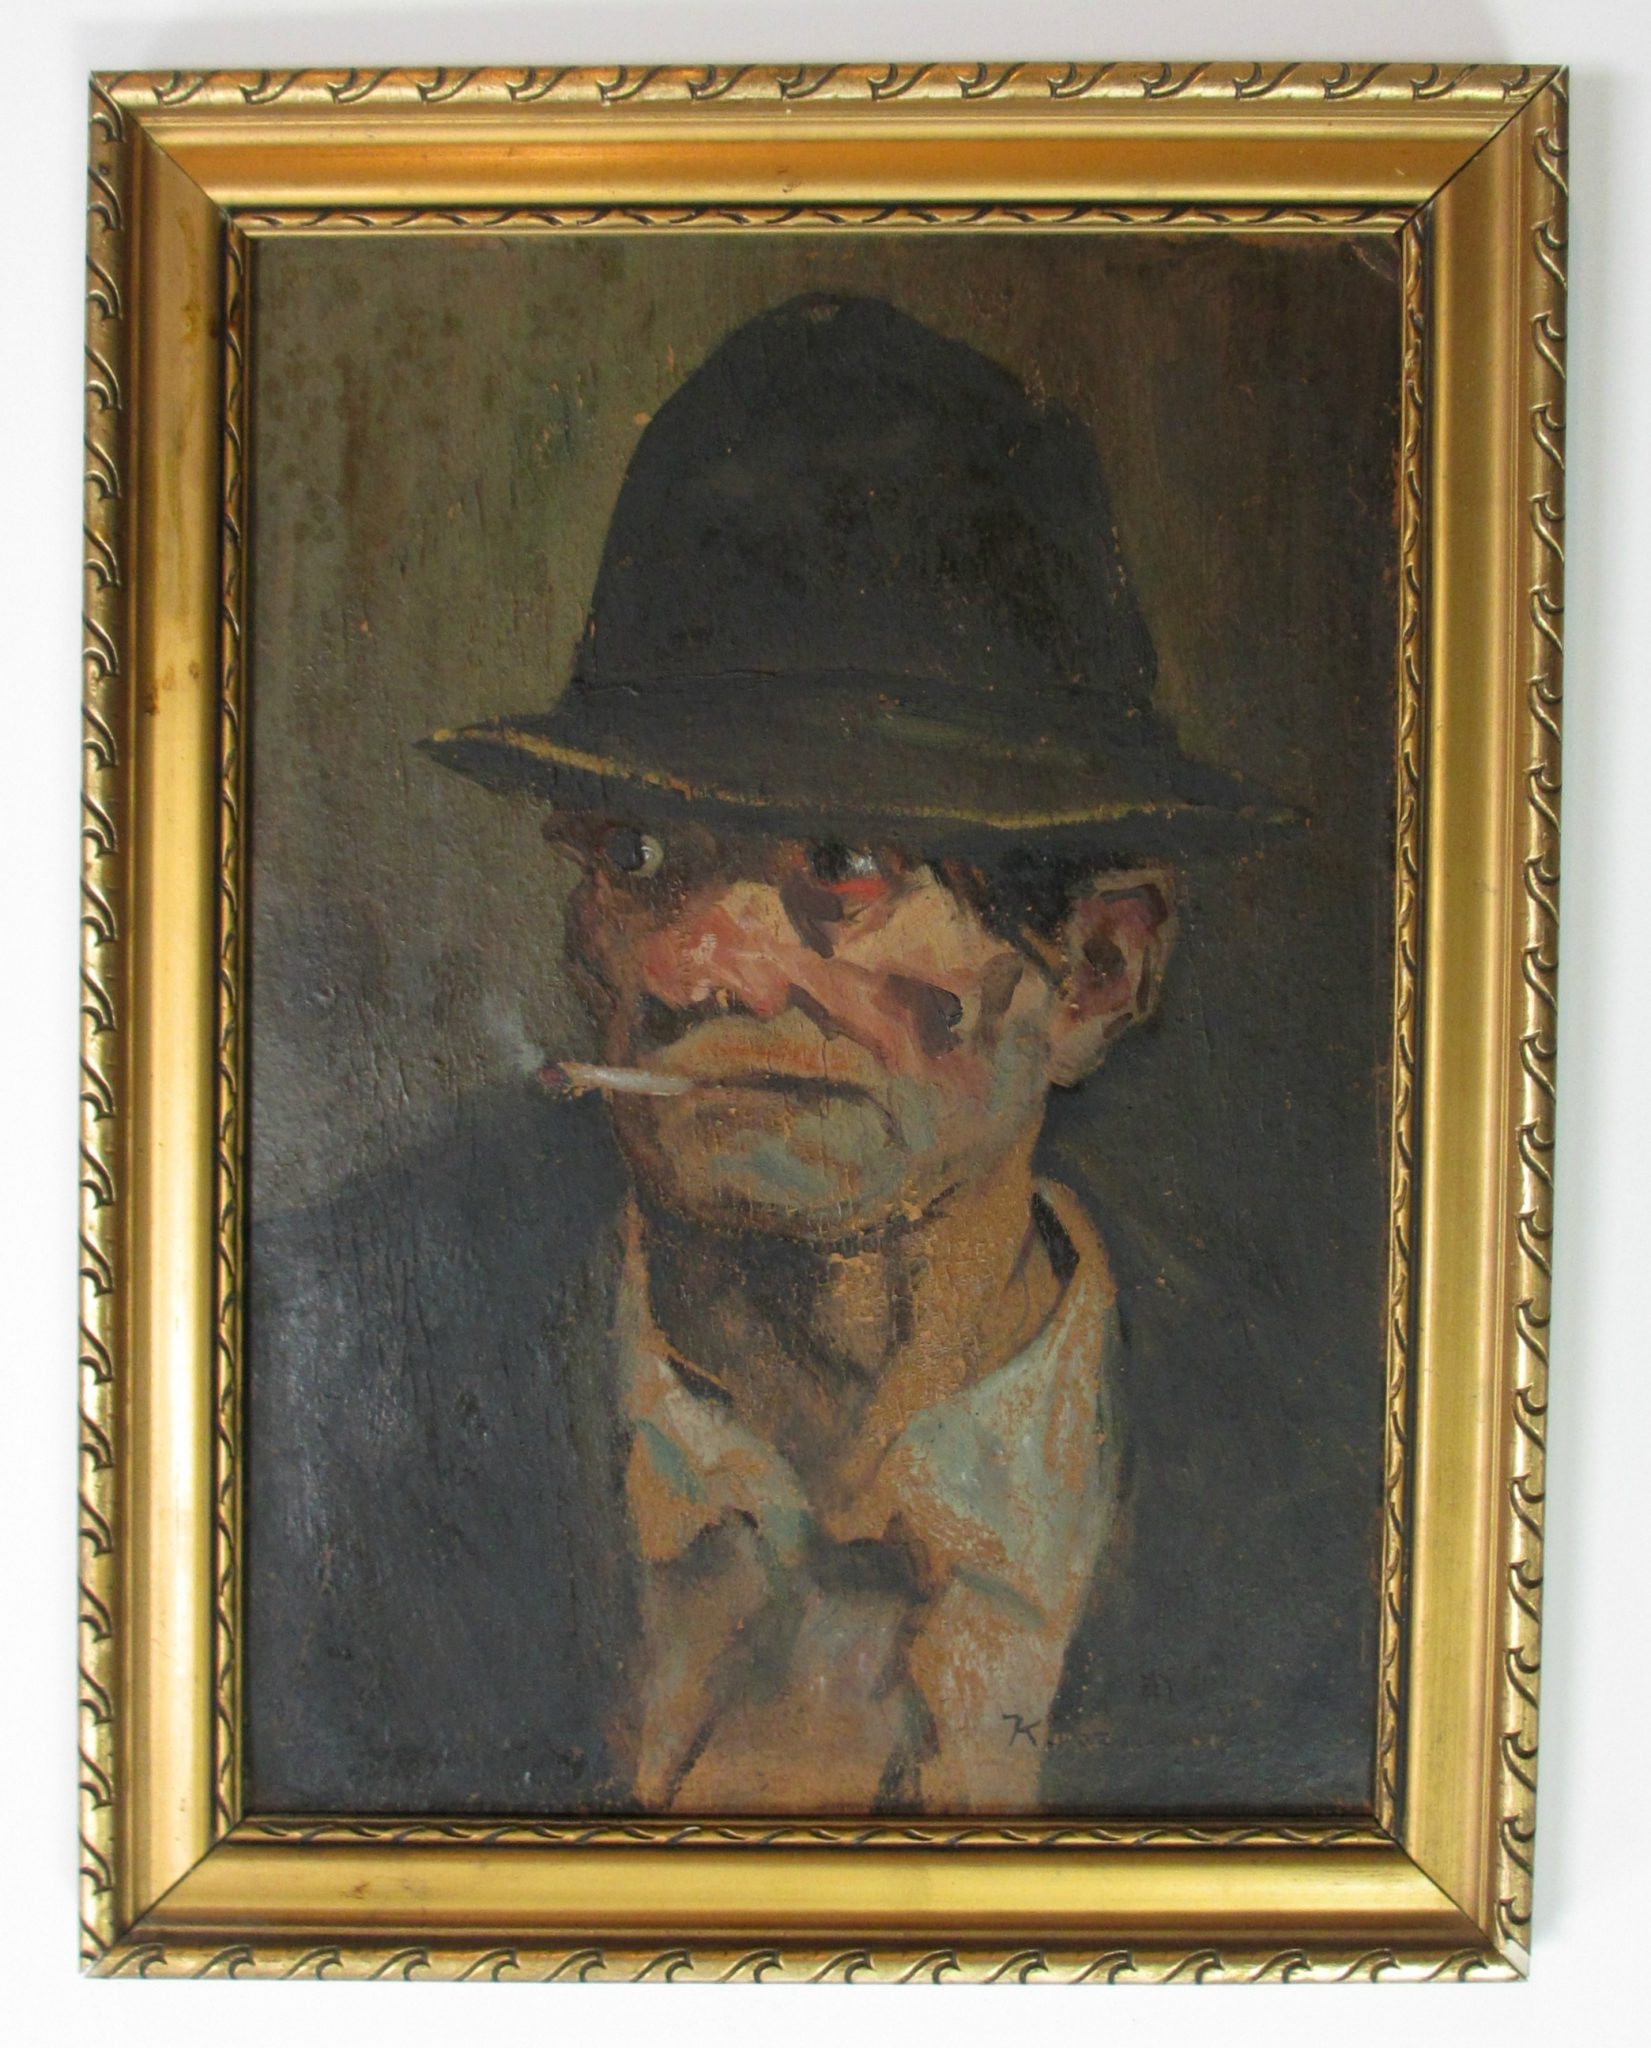 Smoking Man - Before Art Restoration Services